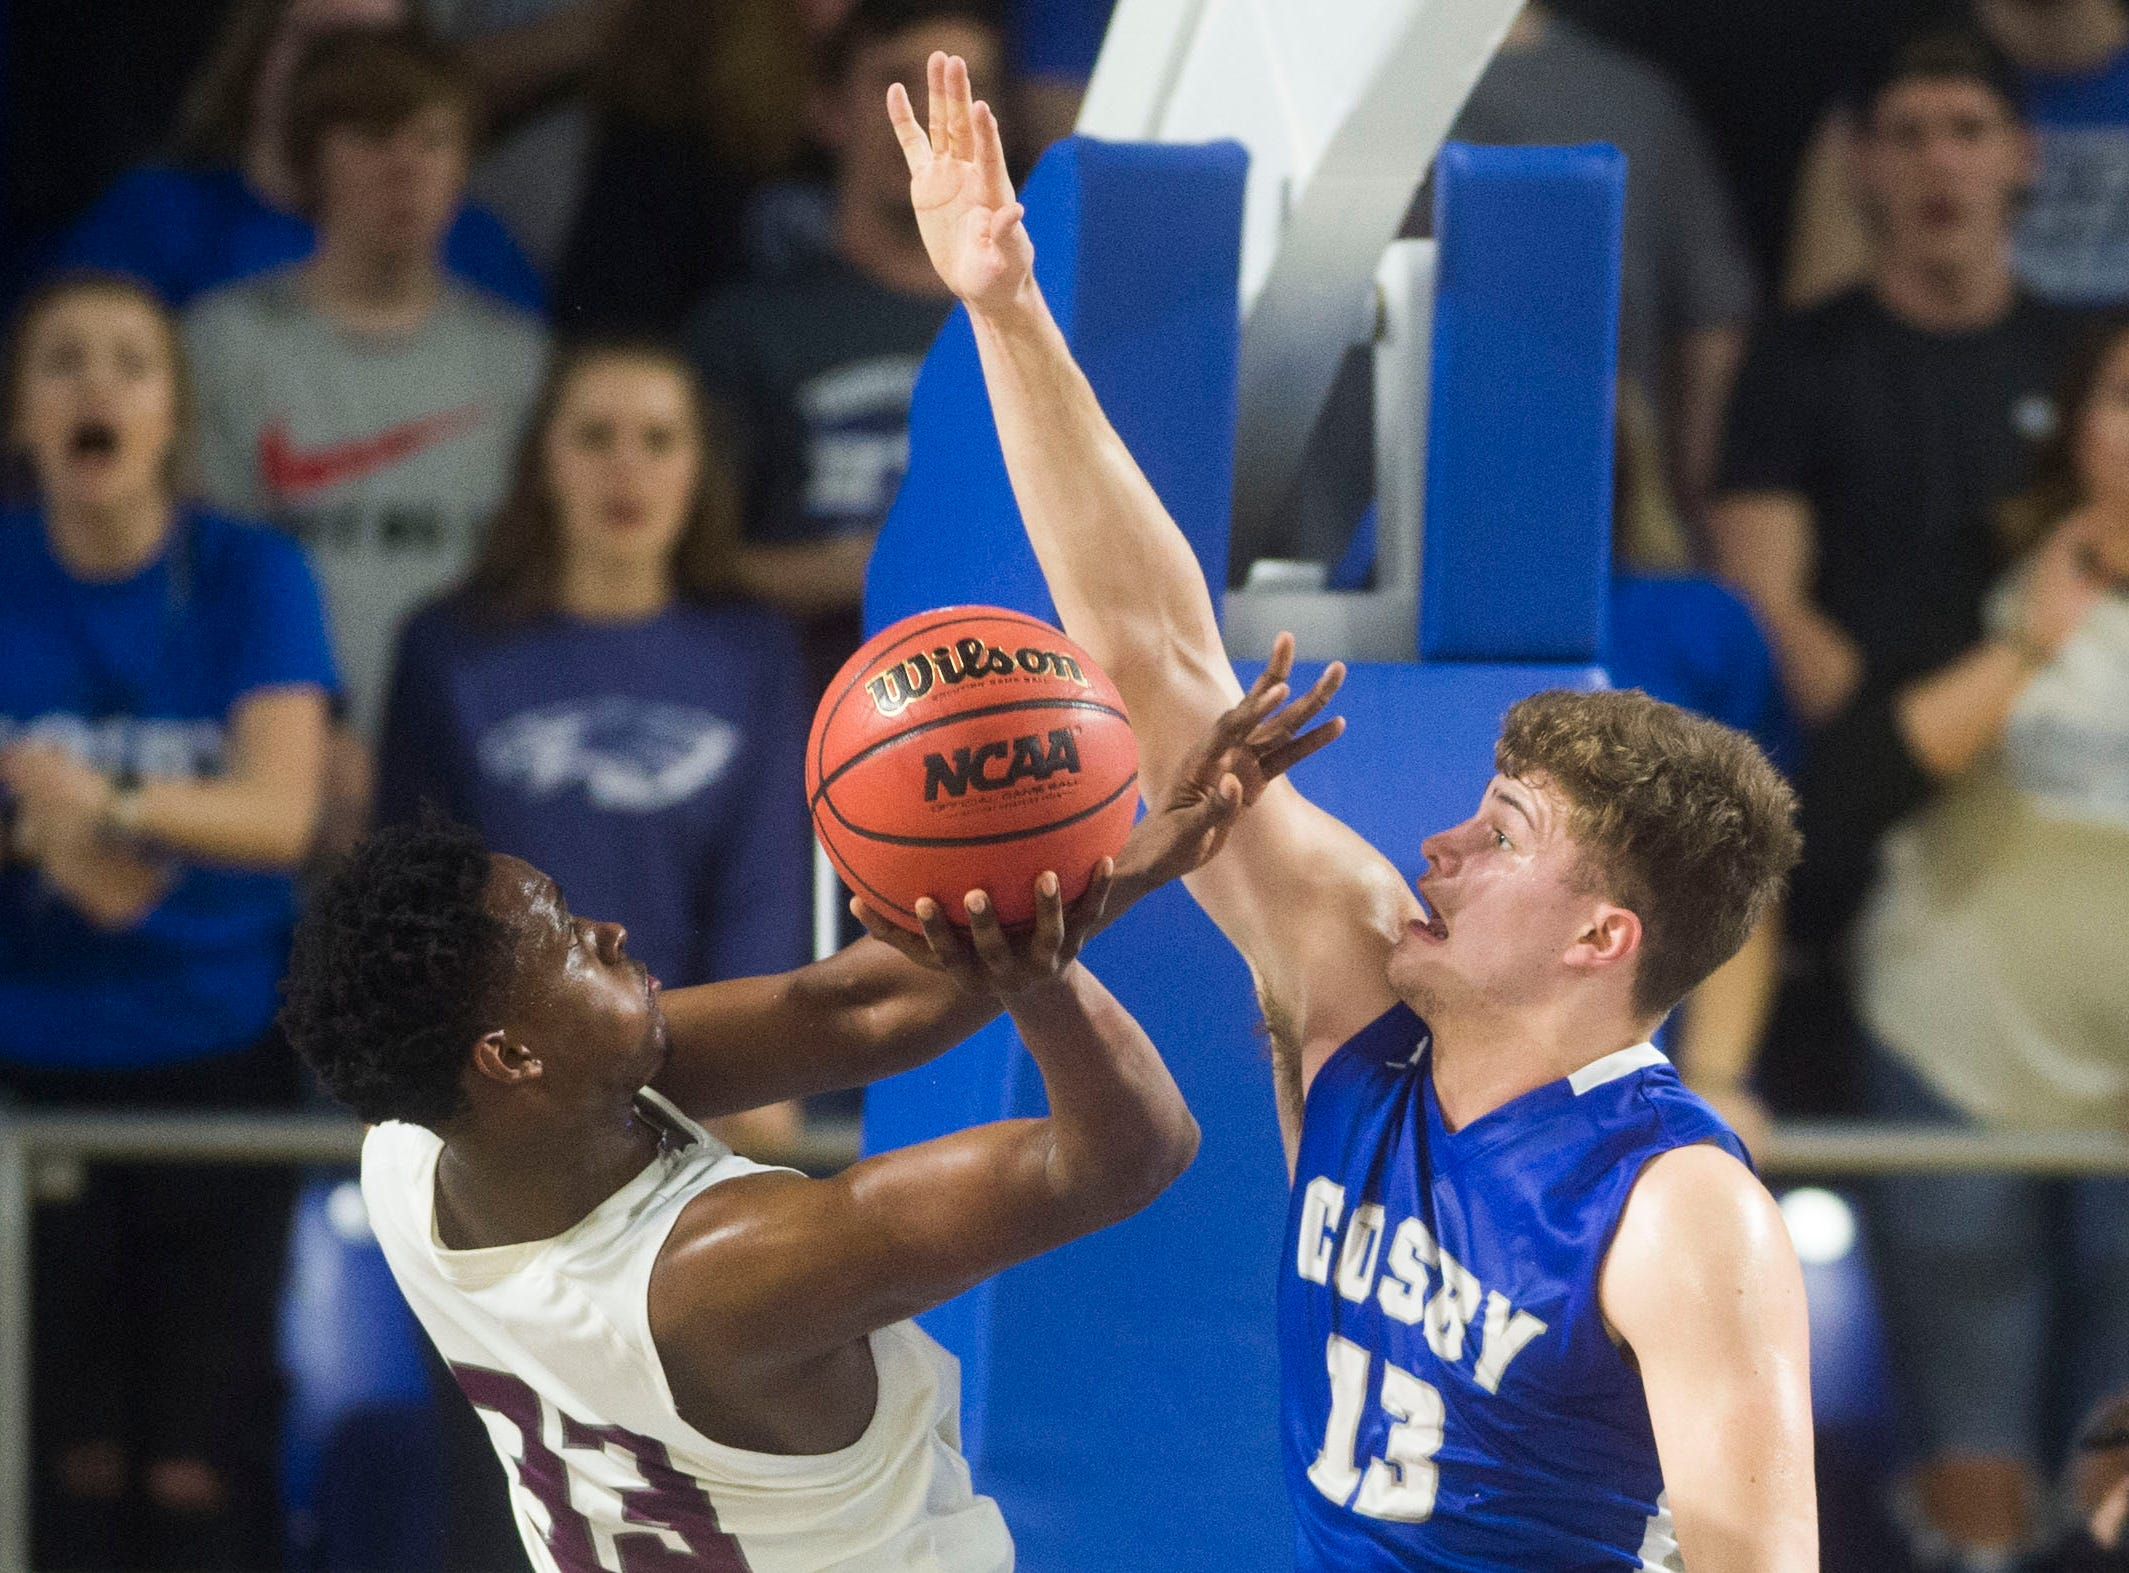 Cosby's Austin McKeehan (13) defends the ball during a TSSAA A state quarterfinal game between Eagleville and Cosby at the Murphy Center in Murfreesboro, Thursday, March 14, 2019.